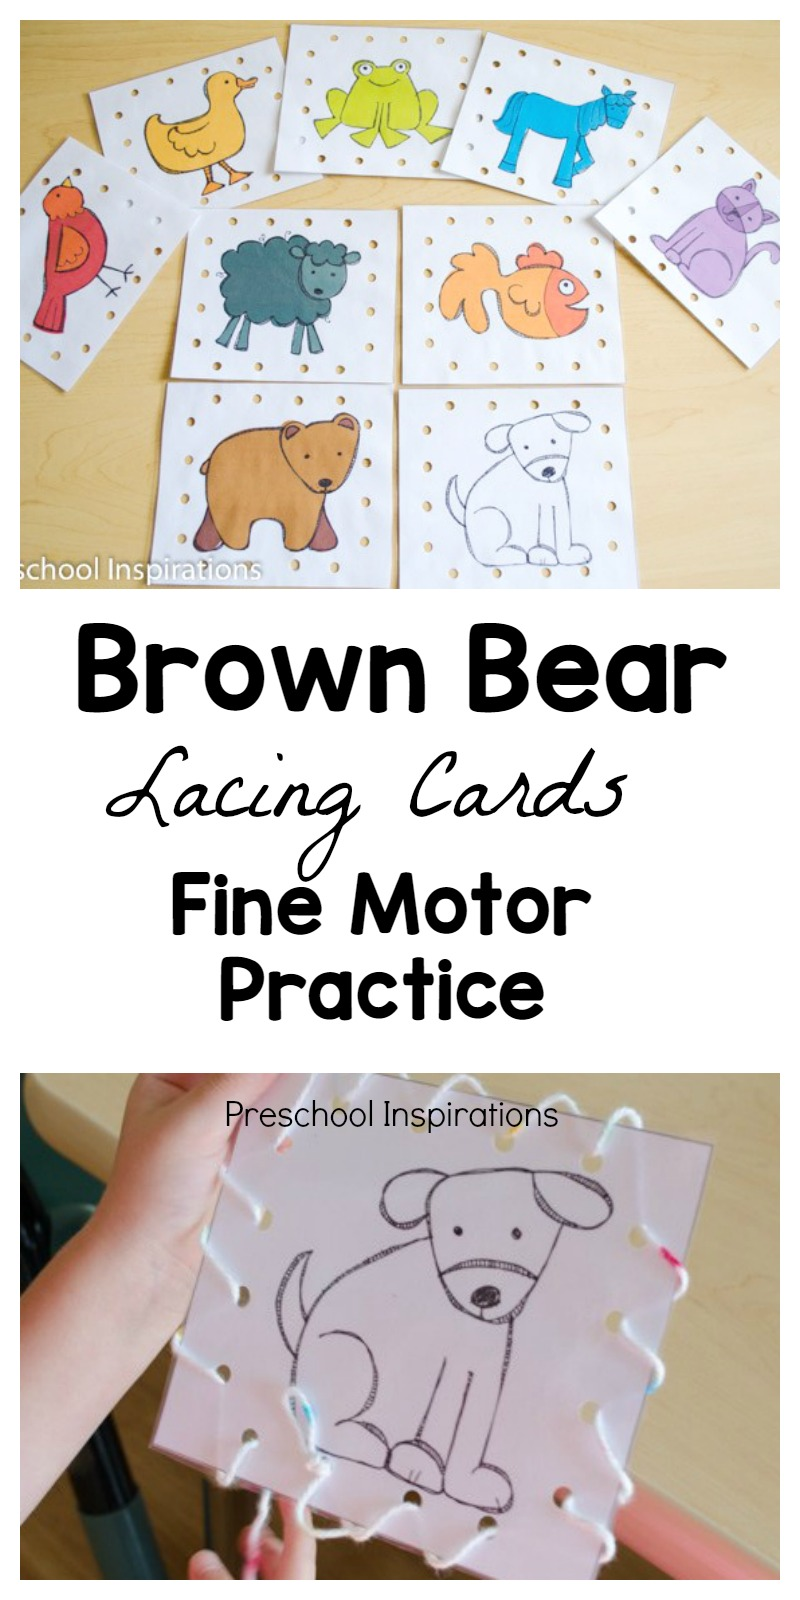 photograph regarding Printable Lacing Cards called Brown Undergo Lacing Playing cards Chaotic Bag - Preschool Inspirations